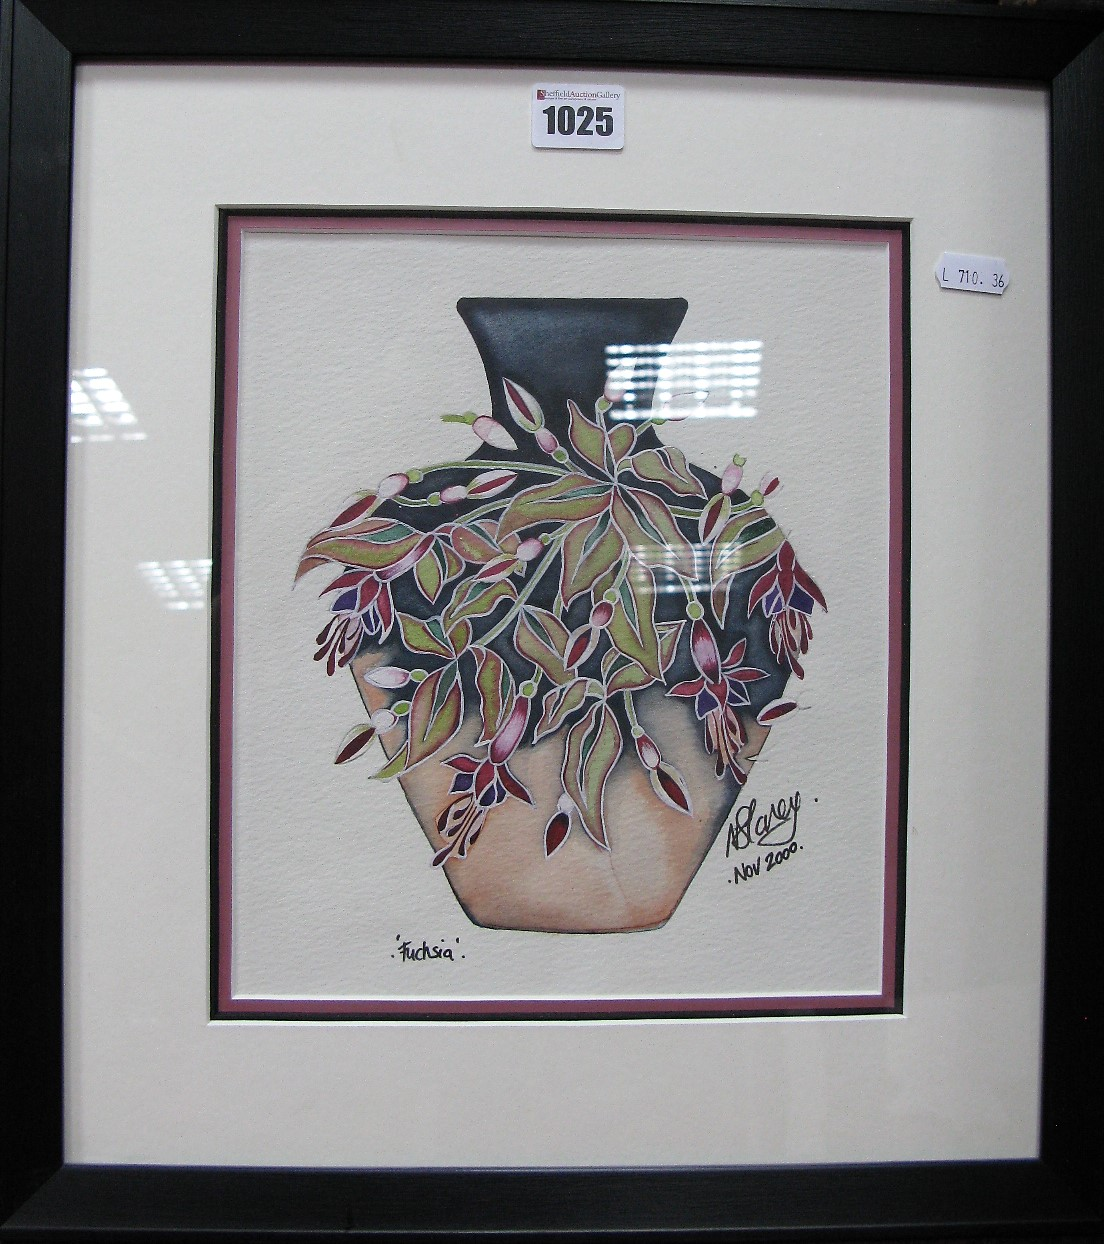 Lot 1025 - A Moorcroft Nicola Slaney Original Watercolour of 'Fuchsia', 25.5 x 22cm, signed and dated